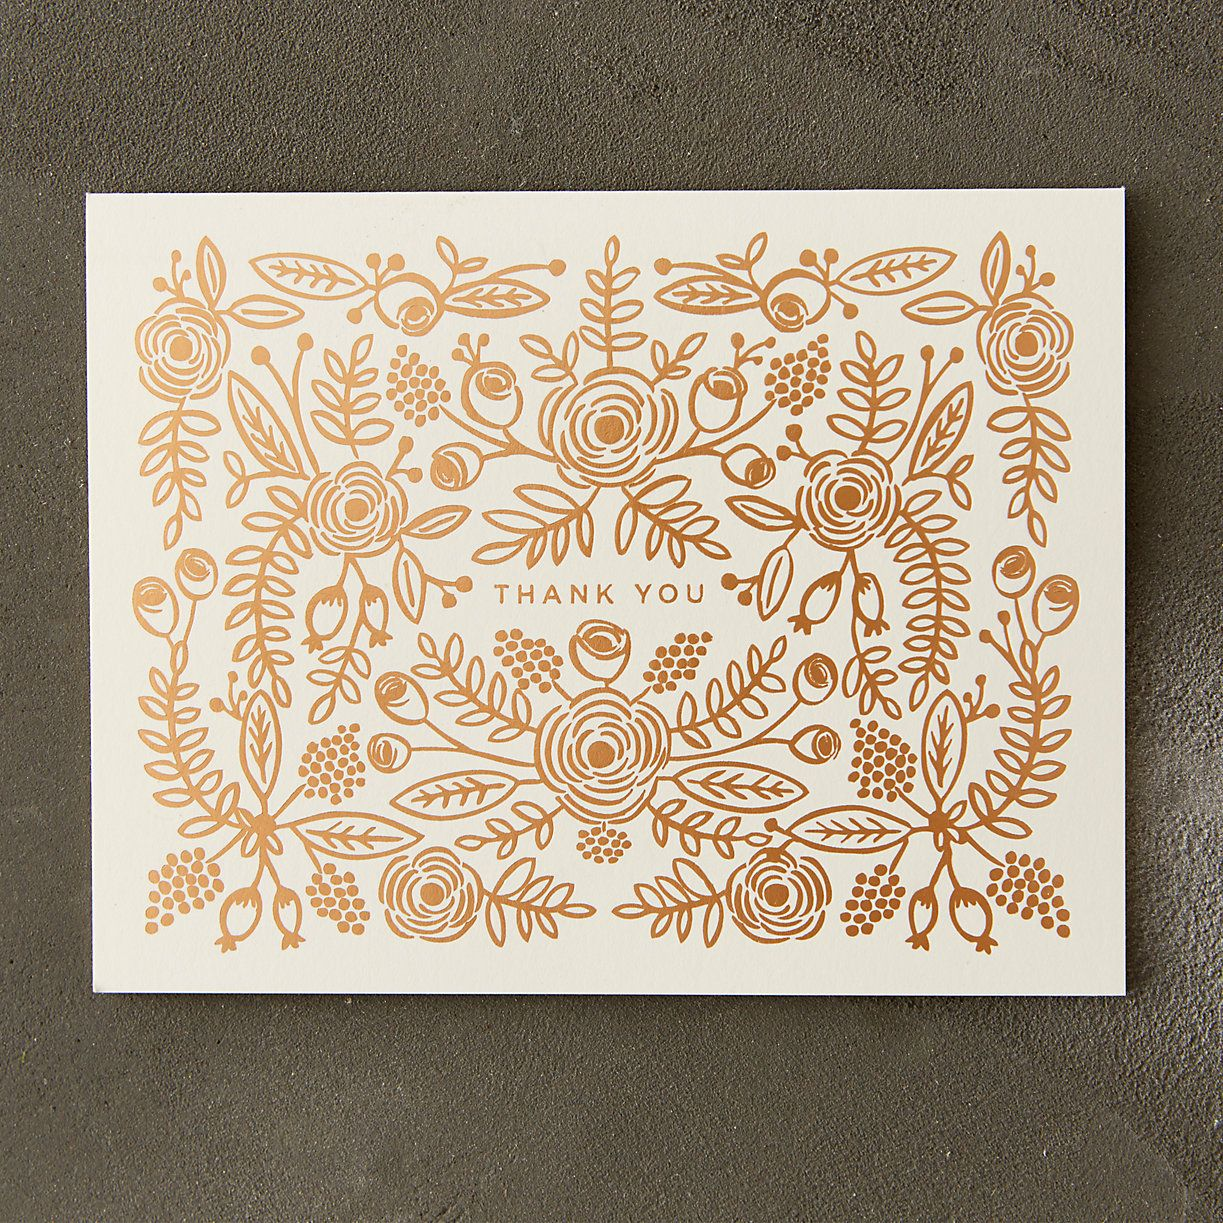 Elegantly embellished in rose gold foil, these floral greetings from Rifle Paper Co. are a graceful way to say thanks.